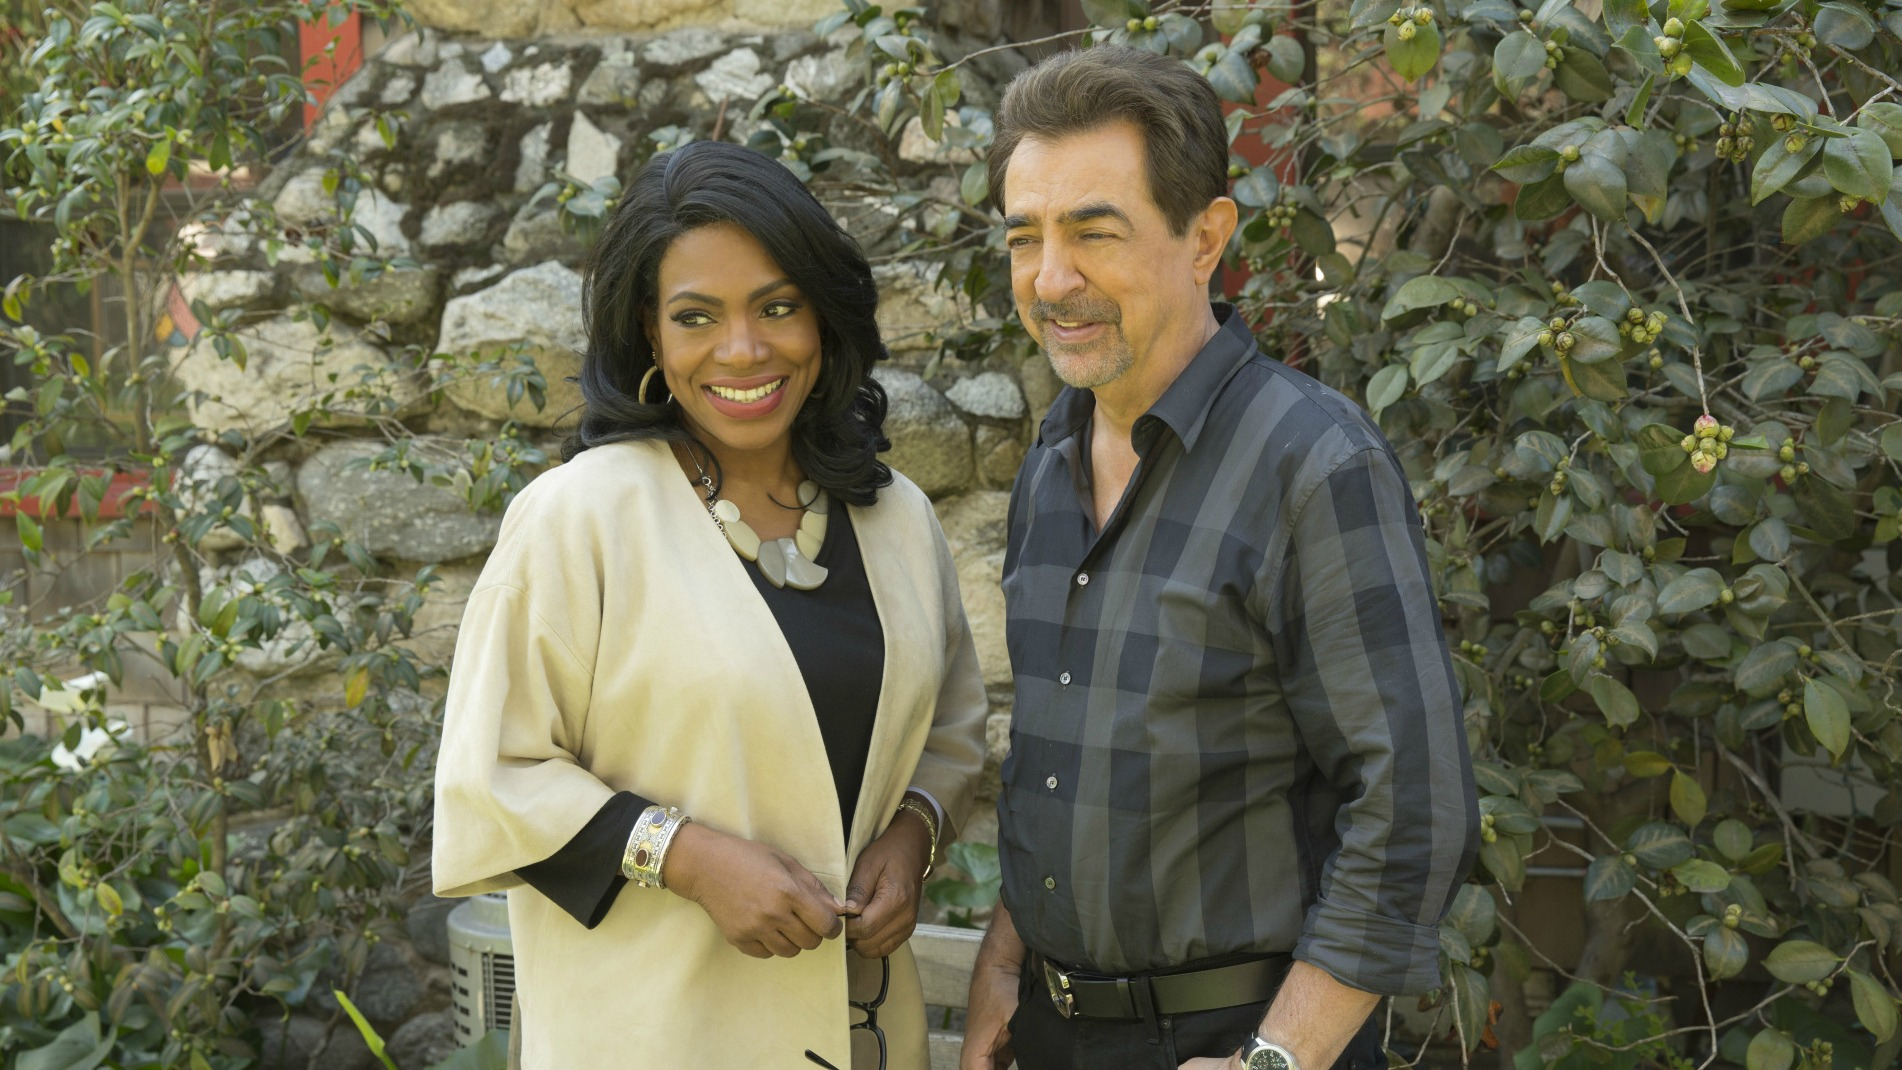 David Rossi rekindled a romance with his ex-wife.